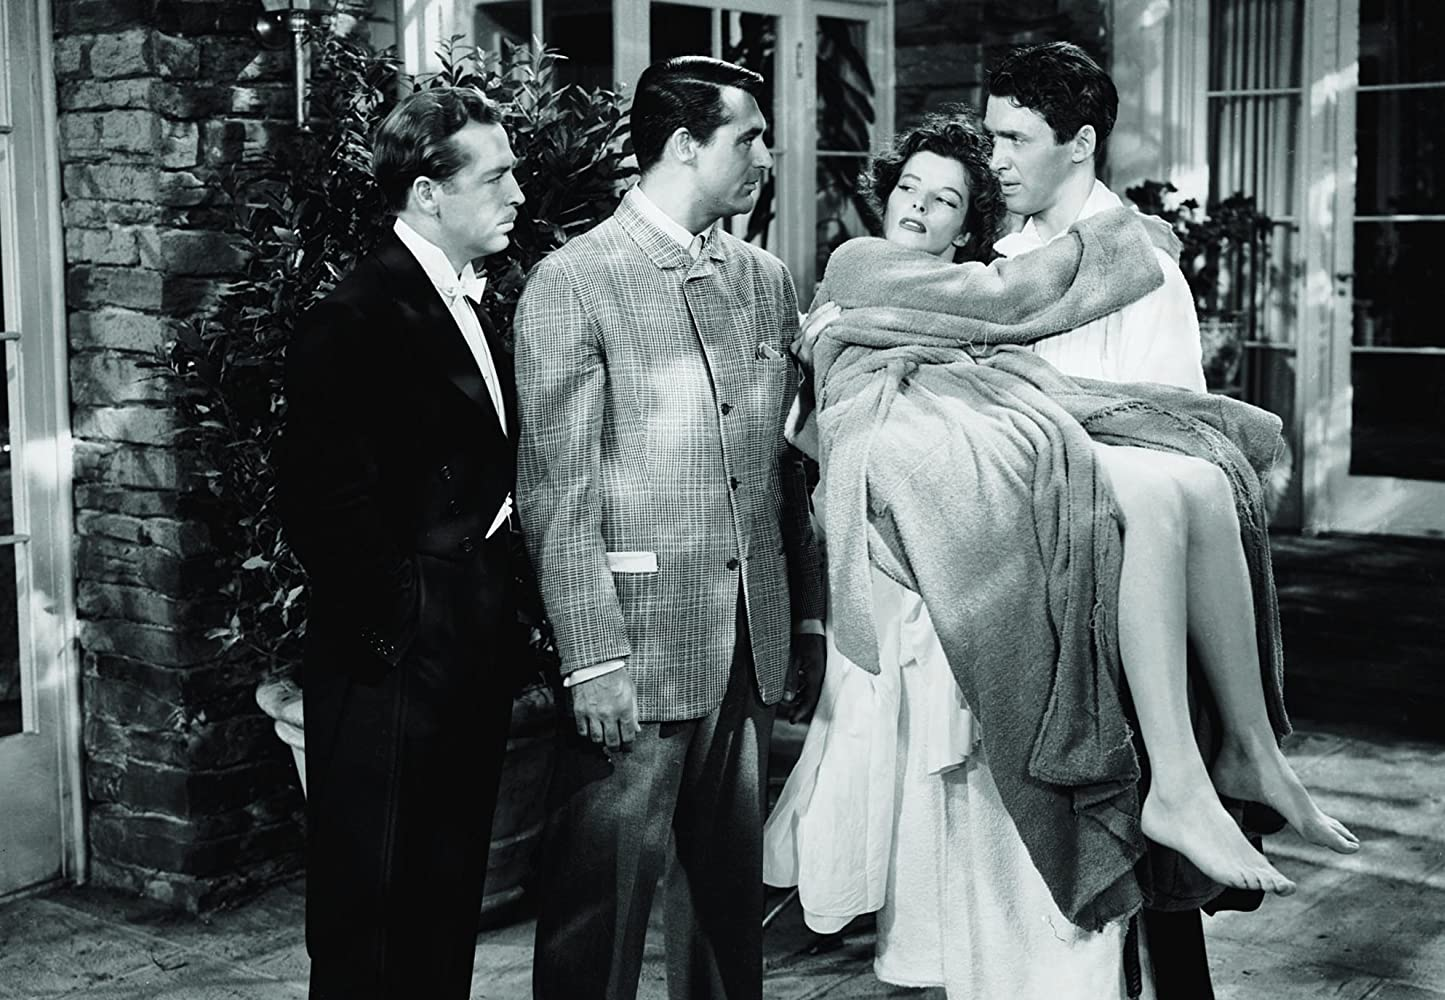 Cary Grant, Katharine Hepburn, James Stewart, and John Howard in The Philadelphia Story (1940)